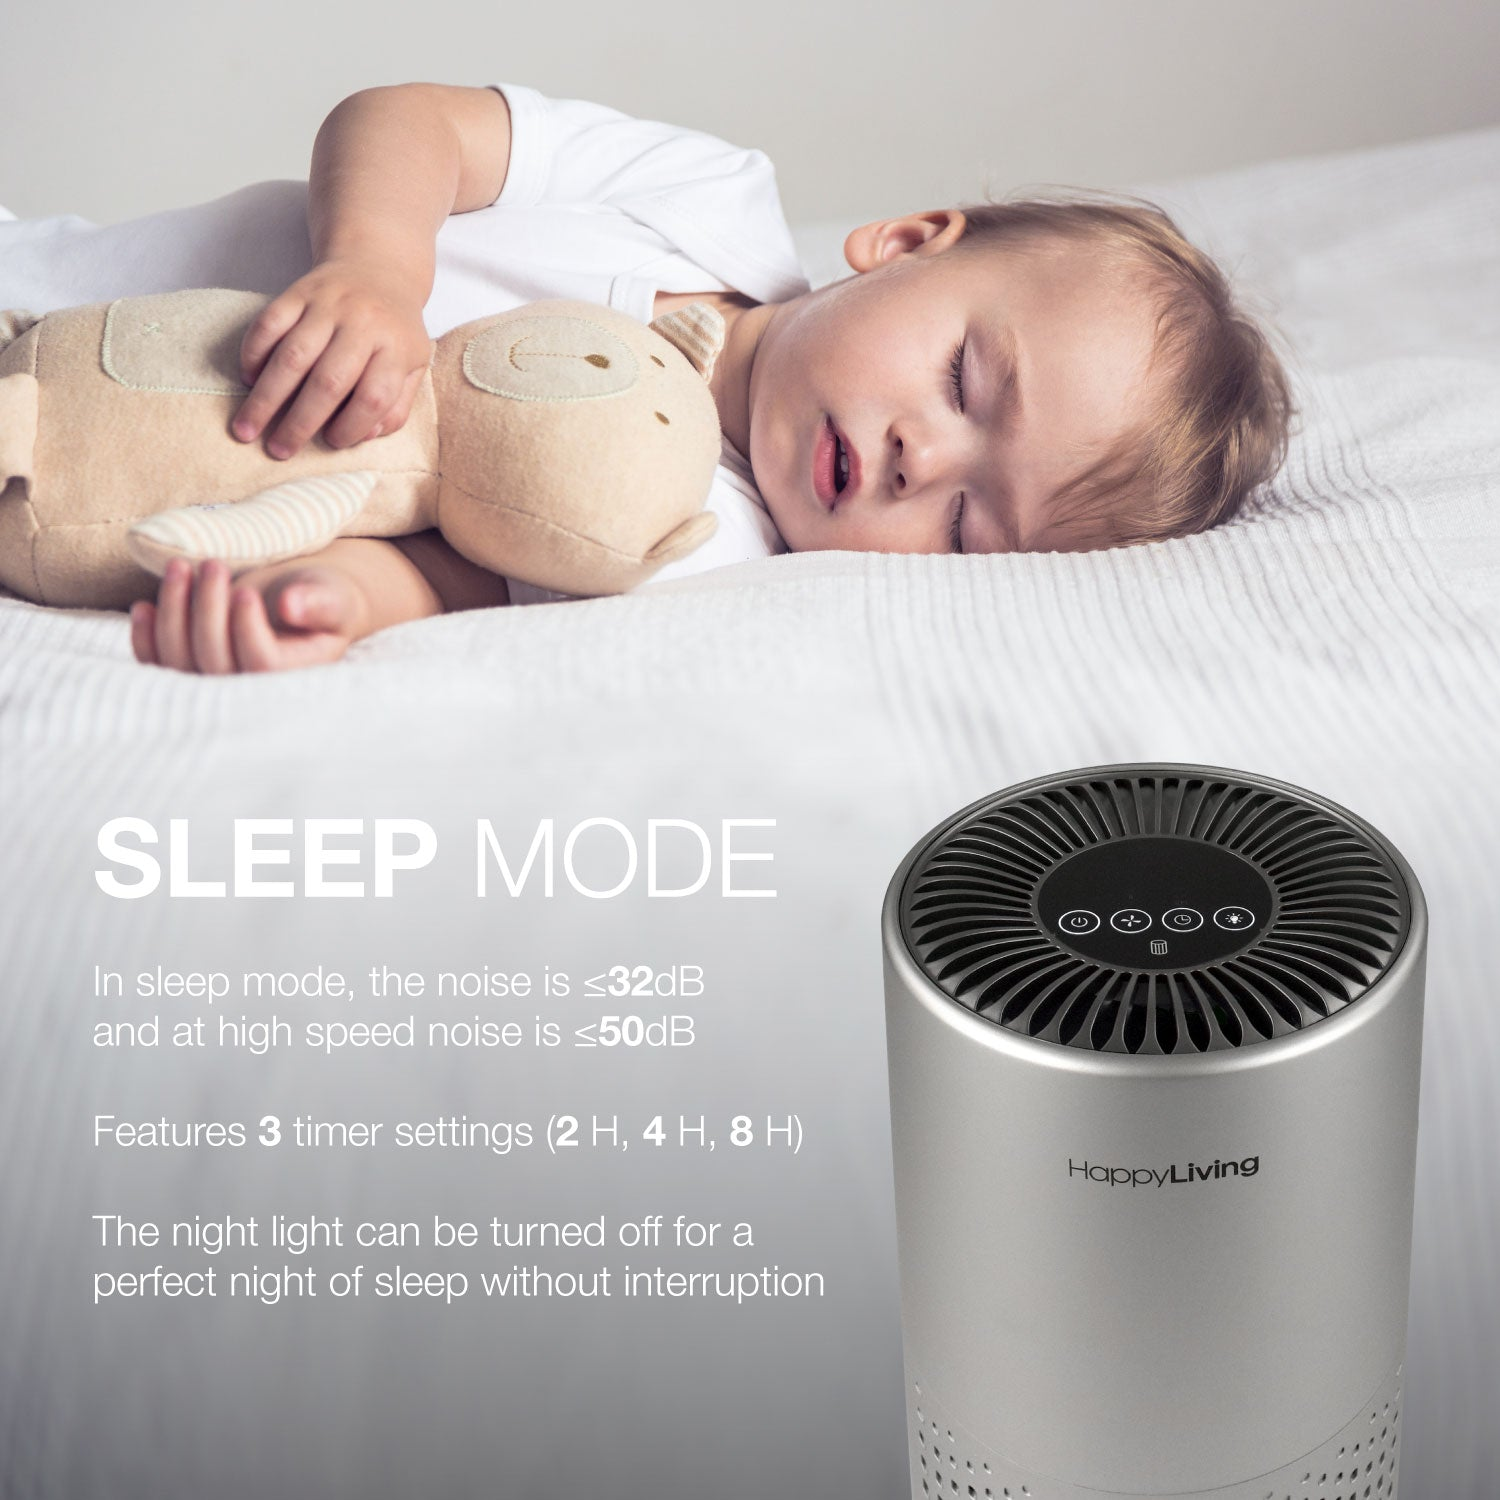 An image showing the sleep mode of the air purifier.